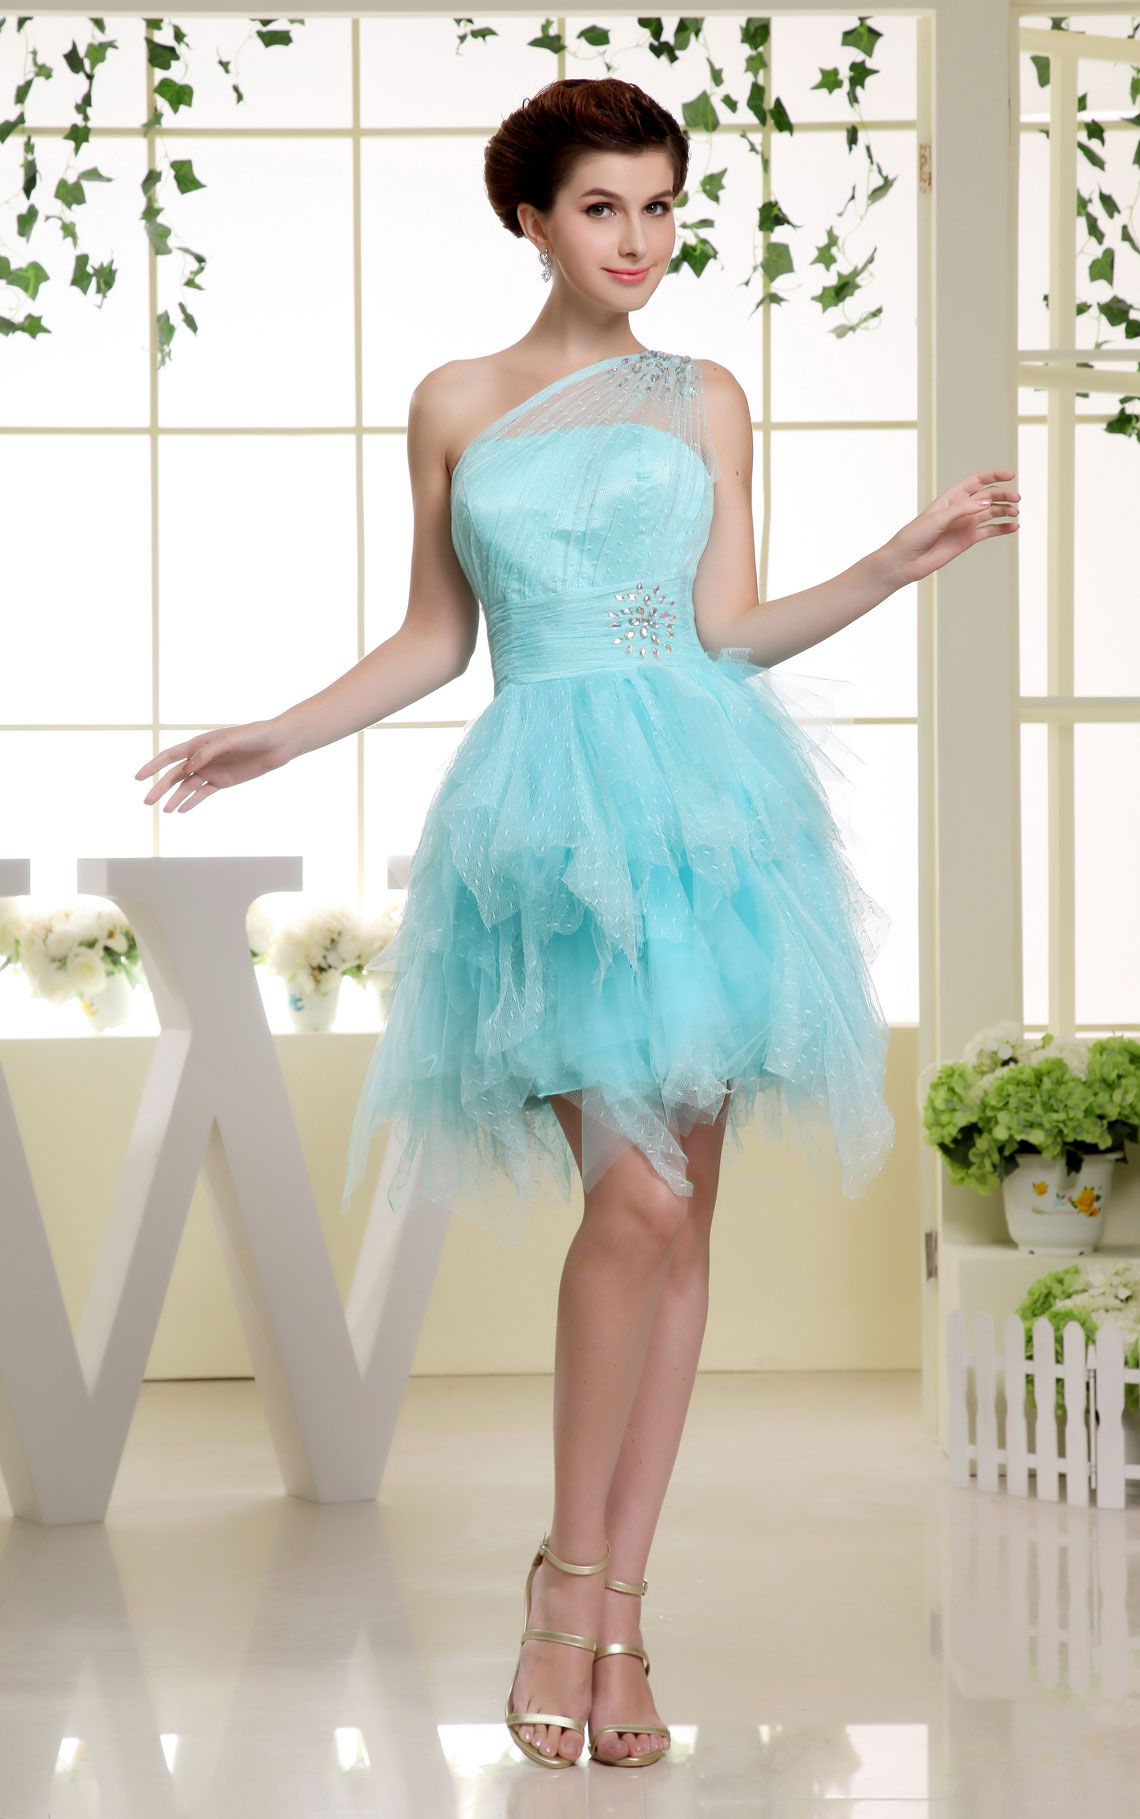 Short length sleeveless ruching draping blue tier cocktail dress i